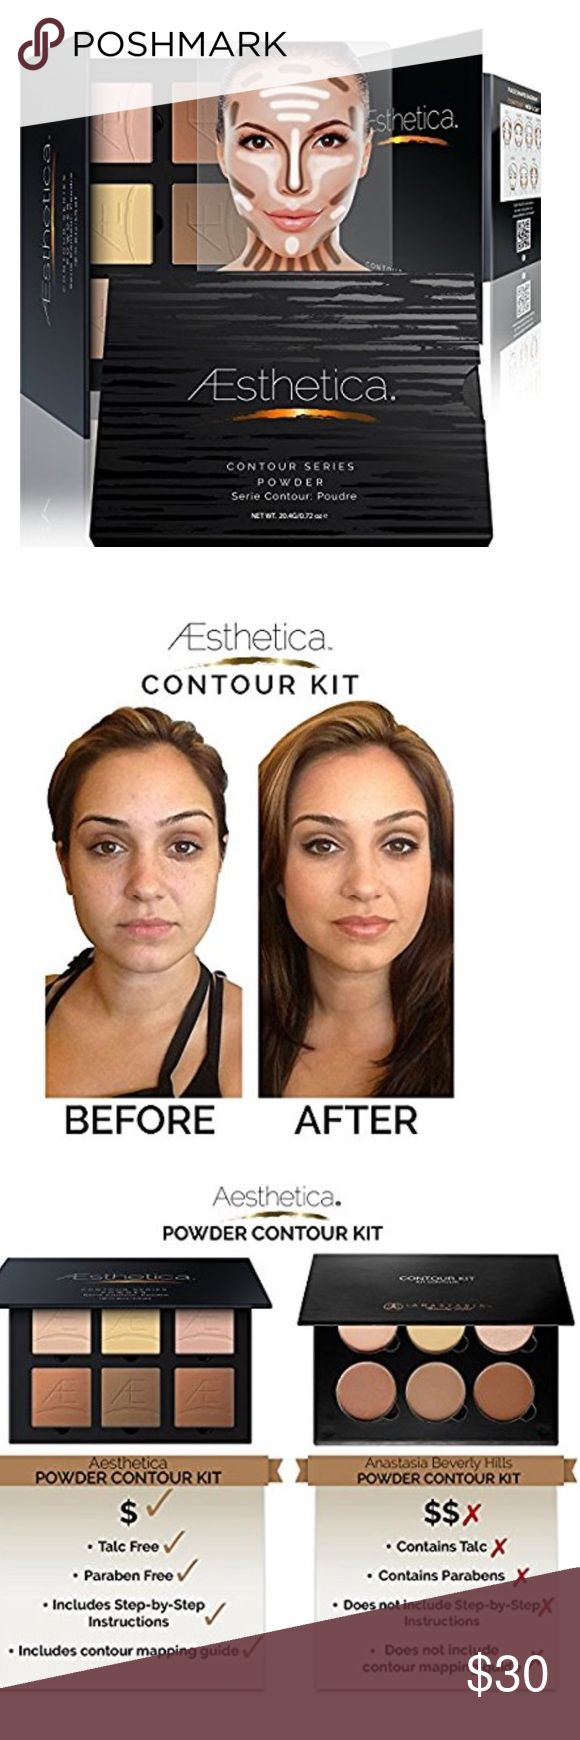 100% auth Aesthetica cosmetic countour Palette Aesthetica Cosmetics Contour and Highlighting Powder Foundation Palette / Contouring Makeup Kit; Easy-to-Follow, Step-by-Step Instructions Included. Makeup